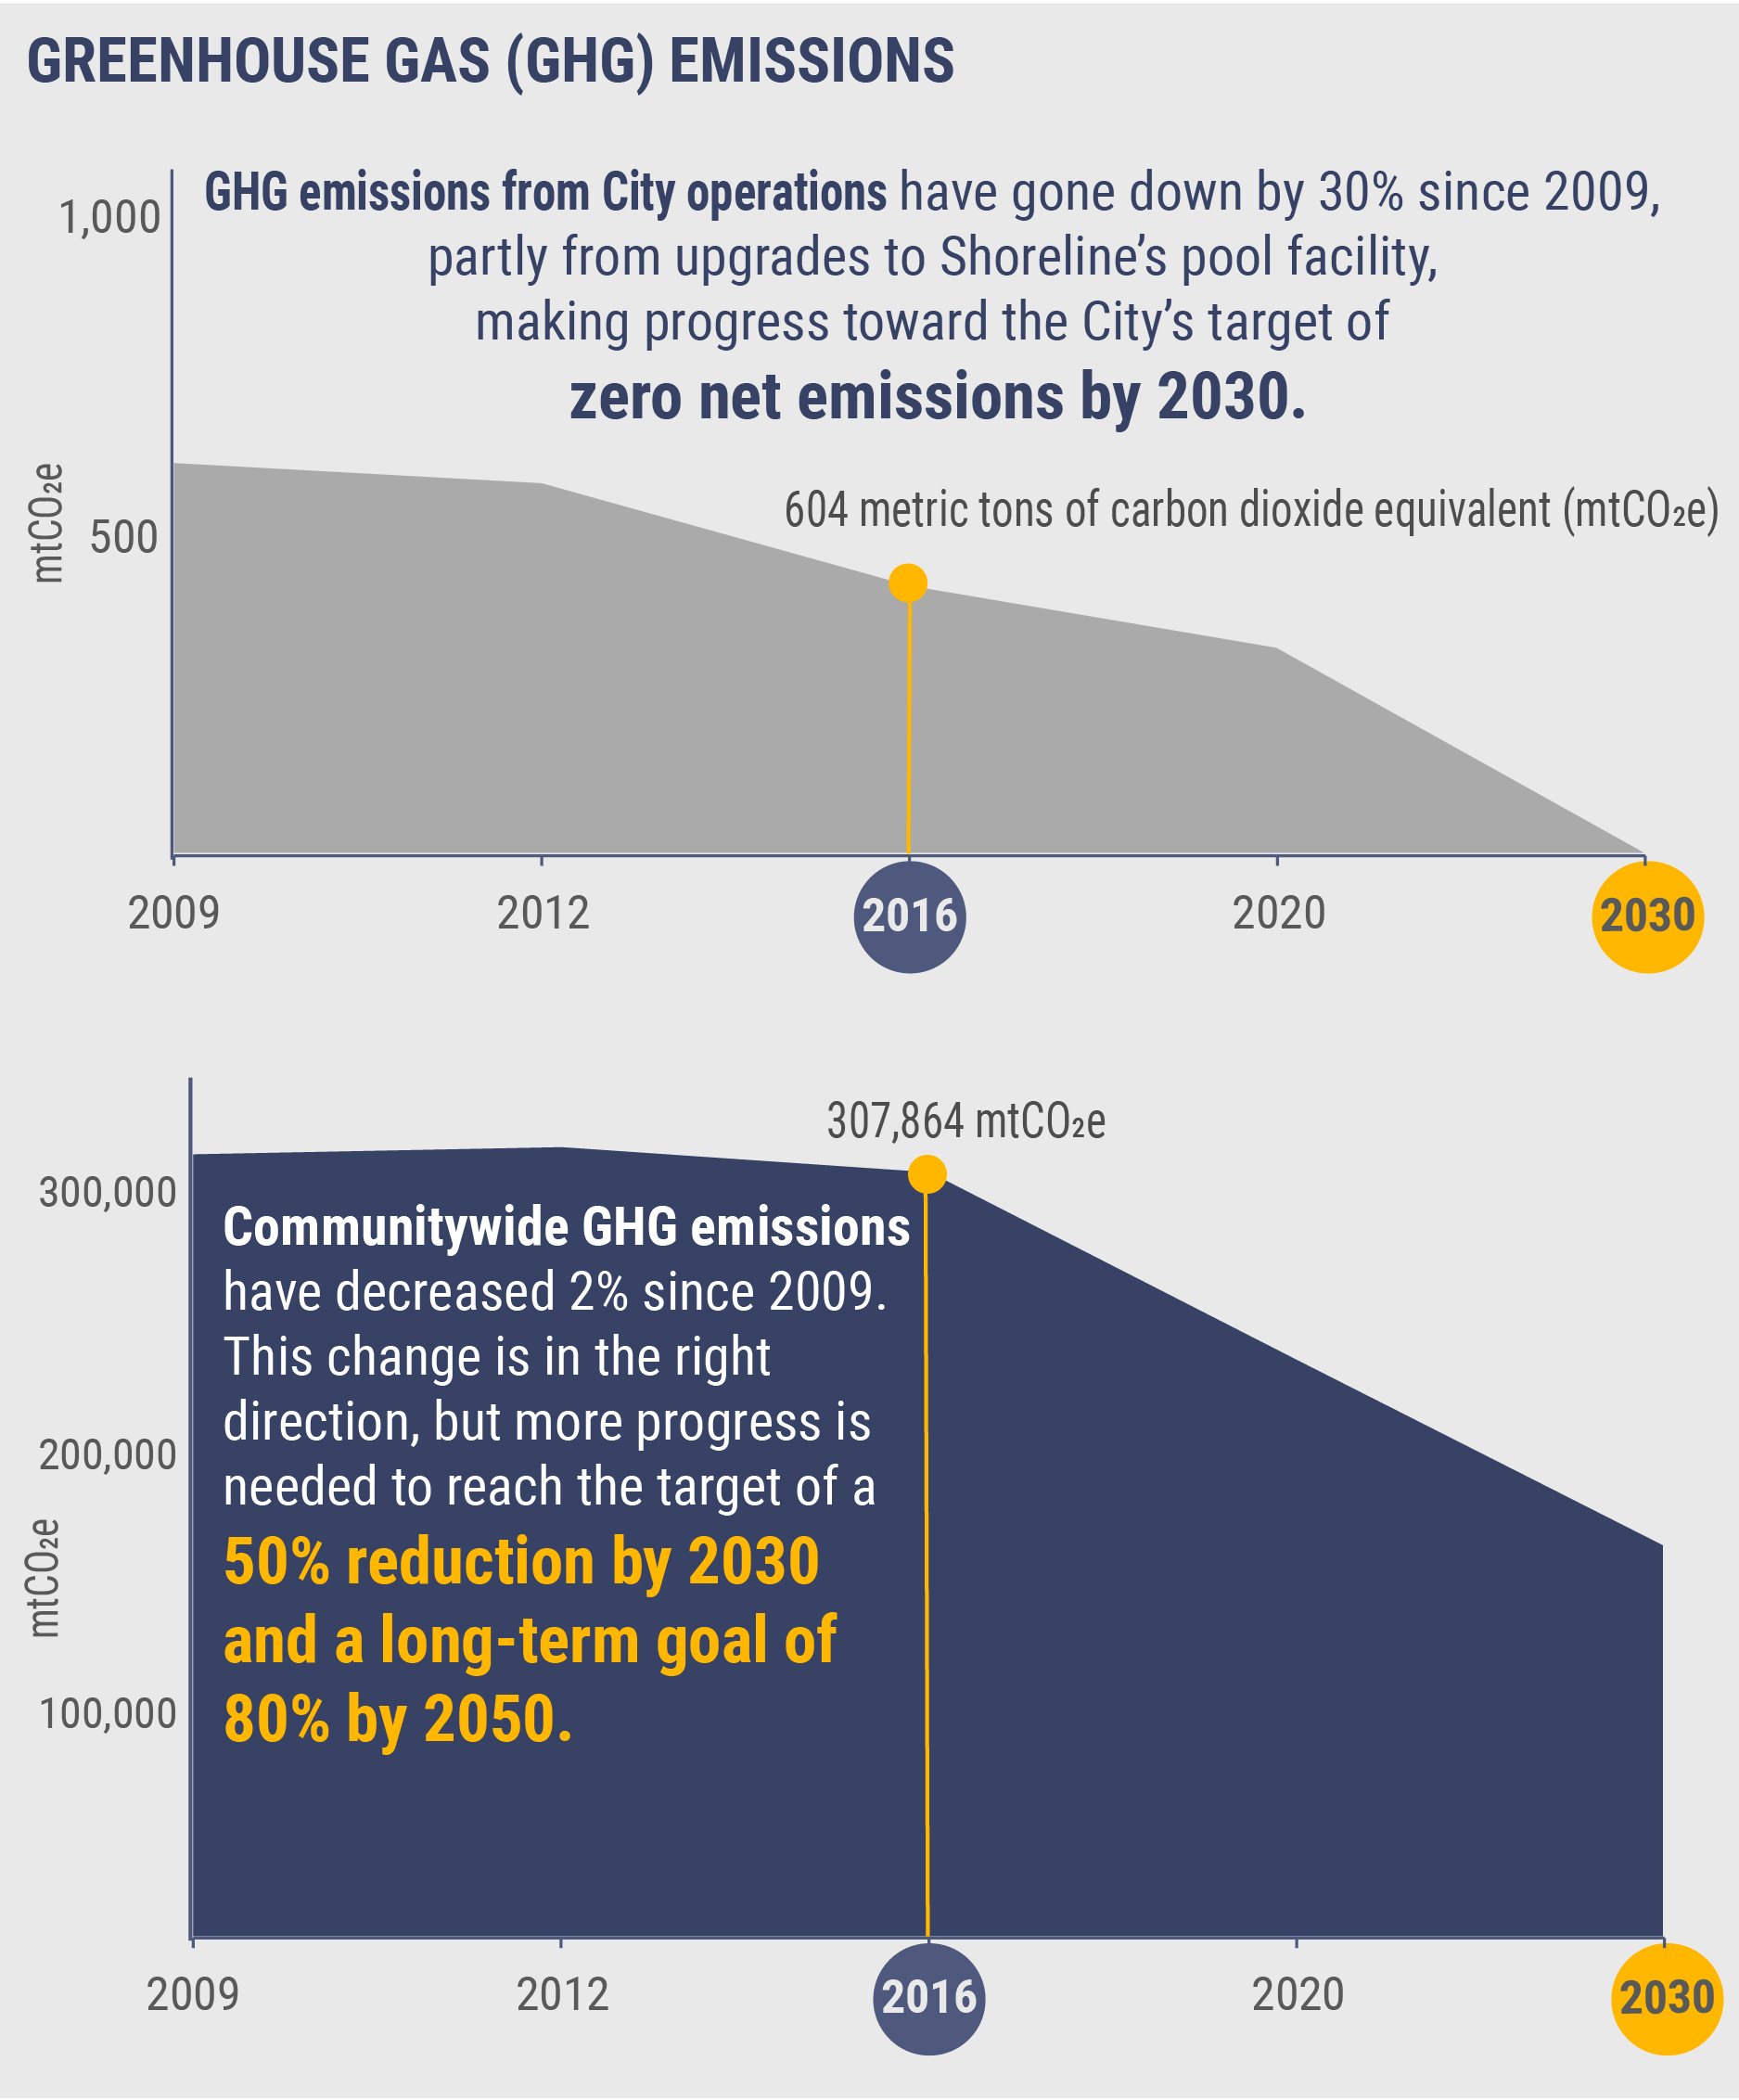 Two charts with one showing the City's target of zero greenhouse gas emissions by 2030 and the other chart showing communitywide greenhouse gas emissions from 2009 decreasing by 50 percent by 2030 and 80% by 2050.